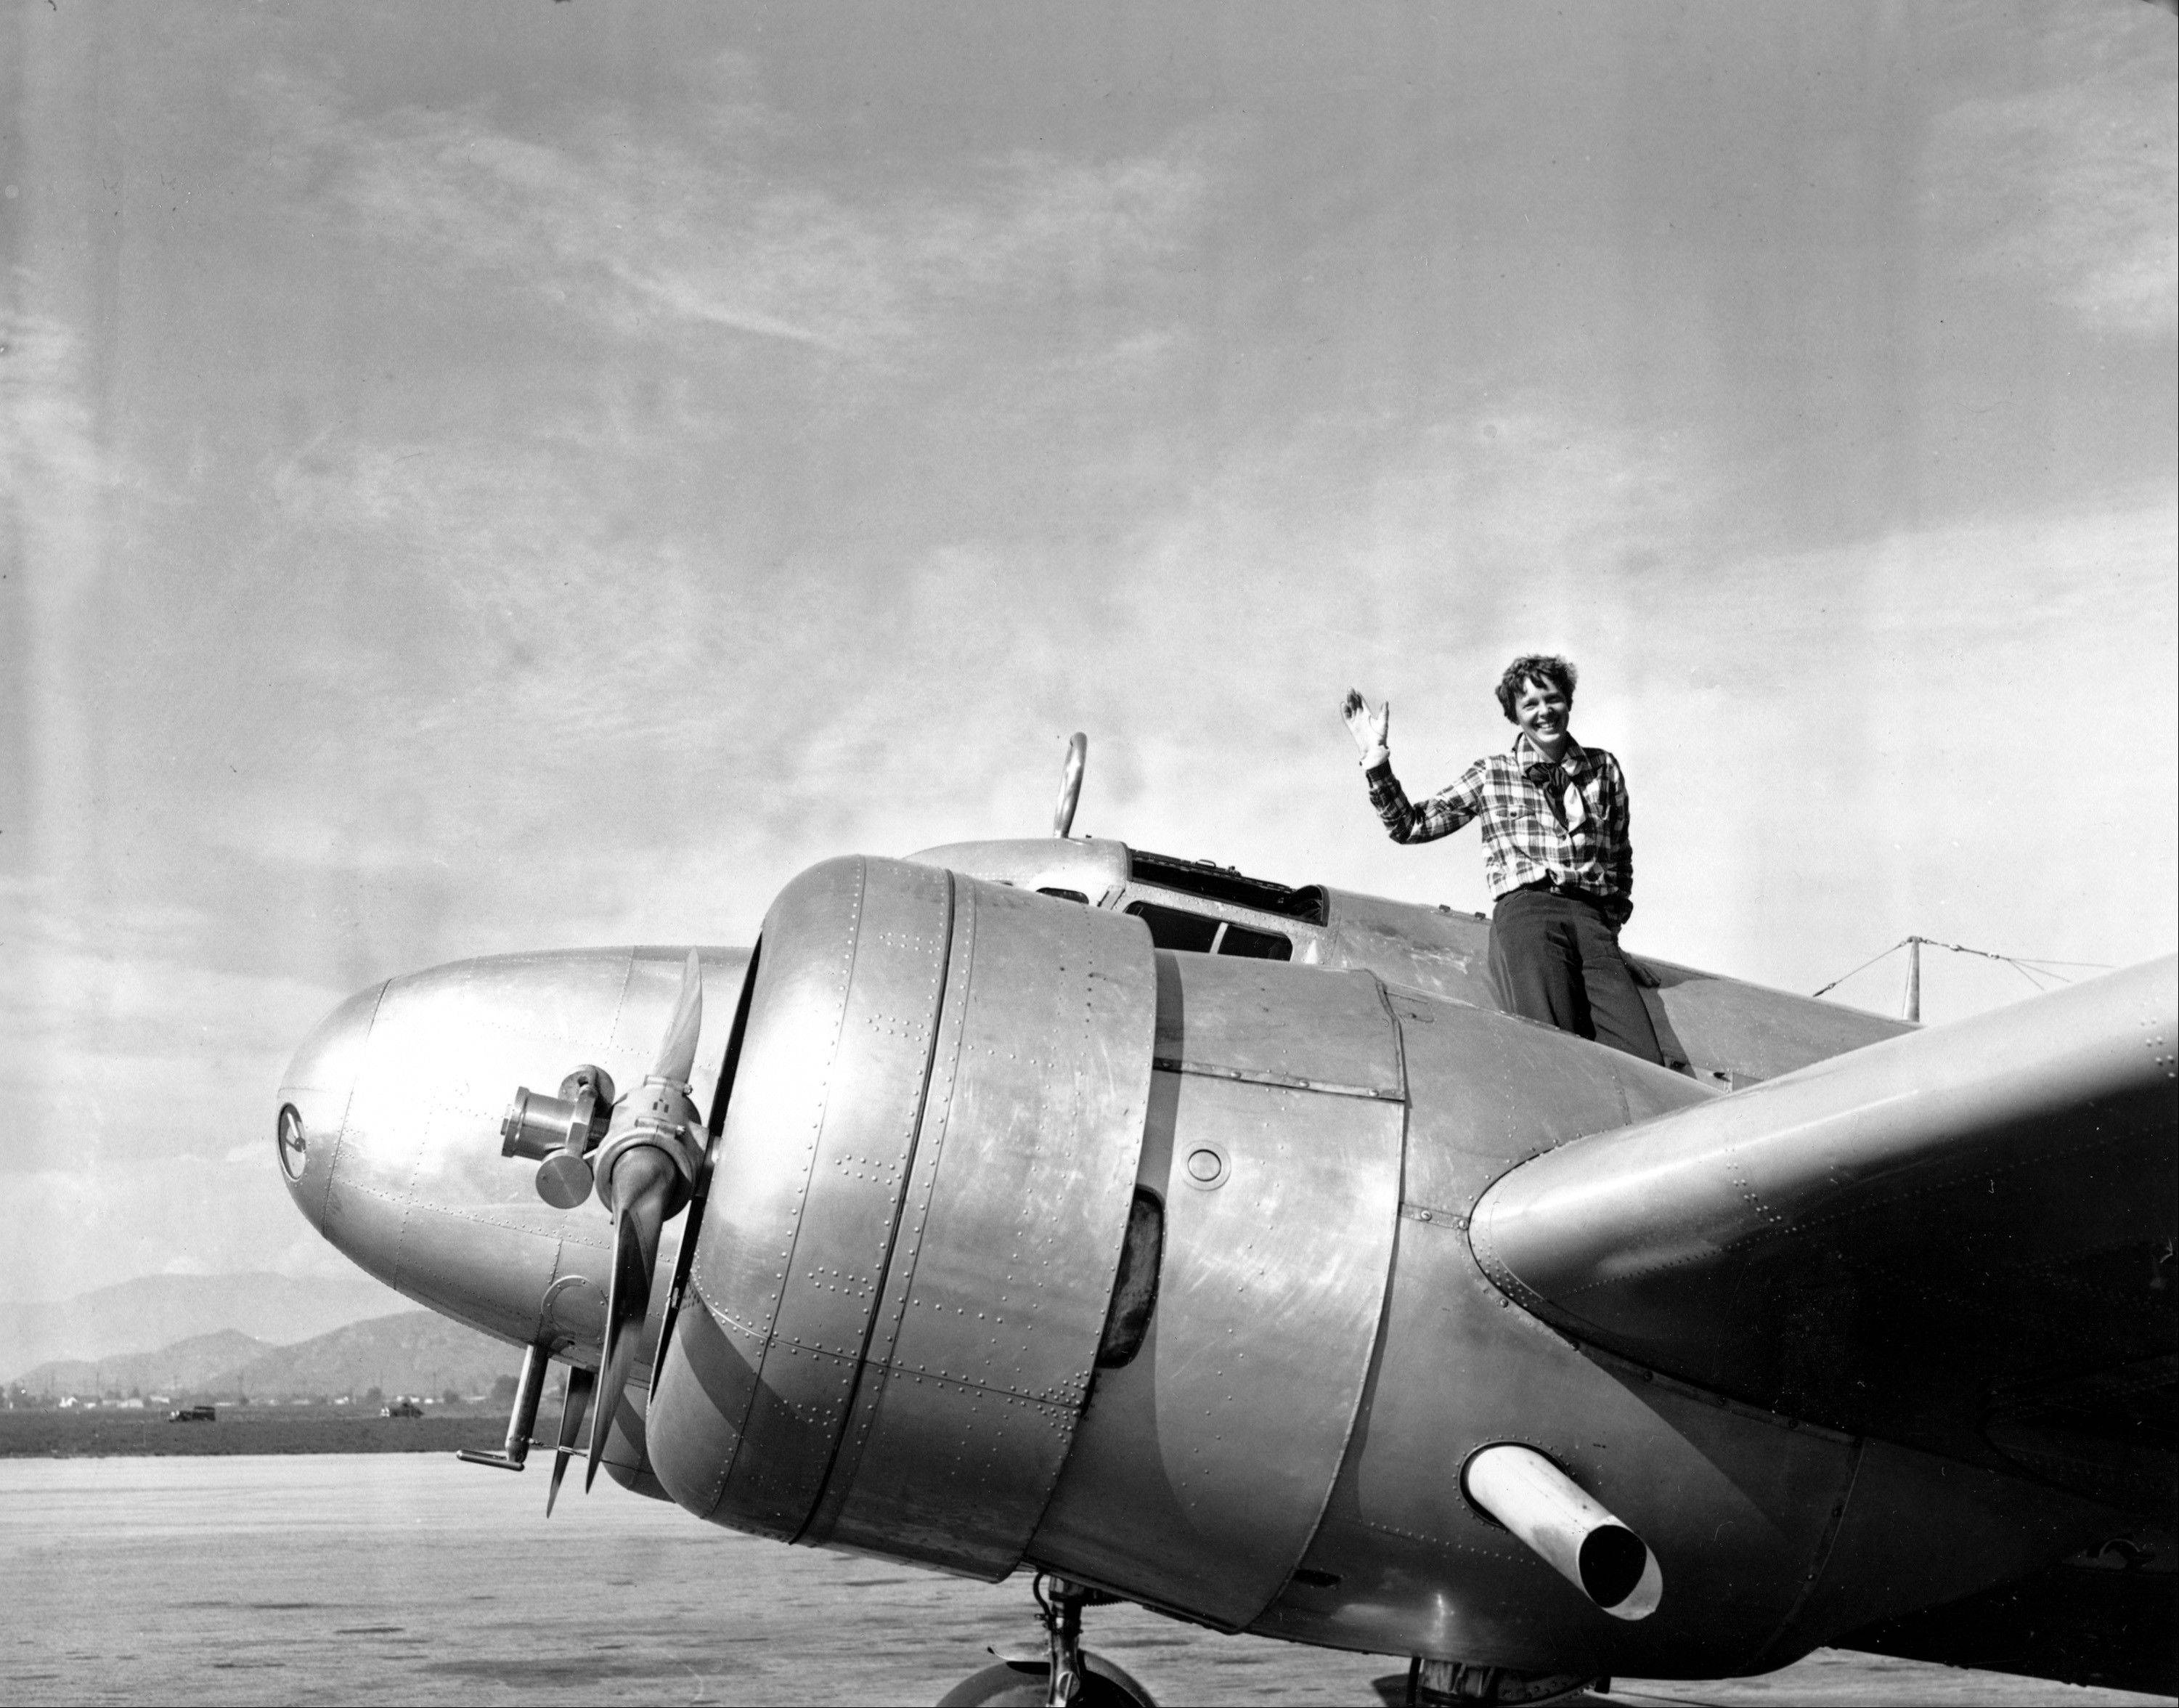 In a March 10, 1937 file photo American aviatrix Amelia Earhart waves from the Electra before taking off from Los Angeles, Ca., on March 10, 1937.